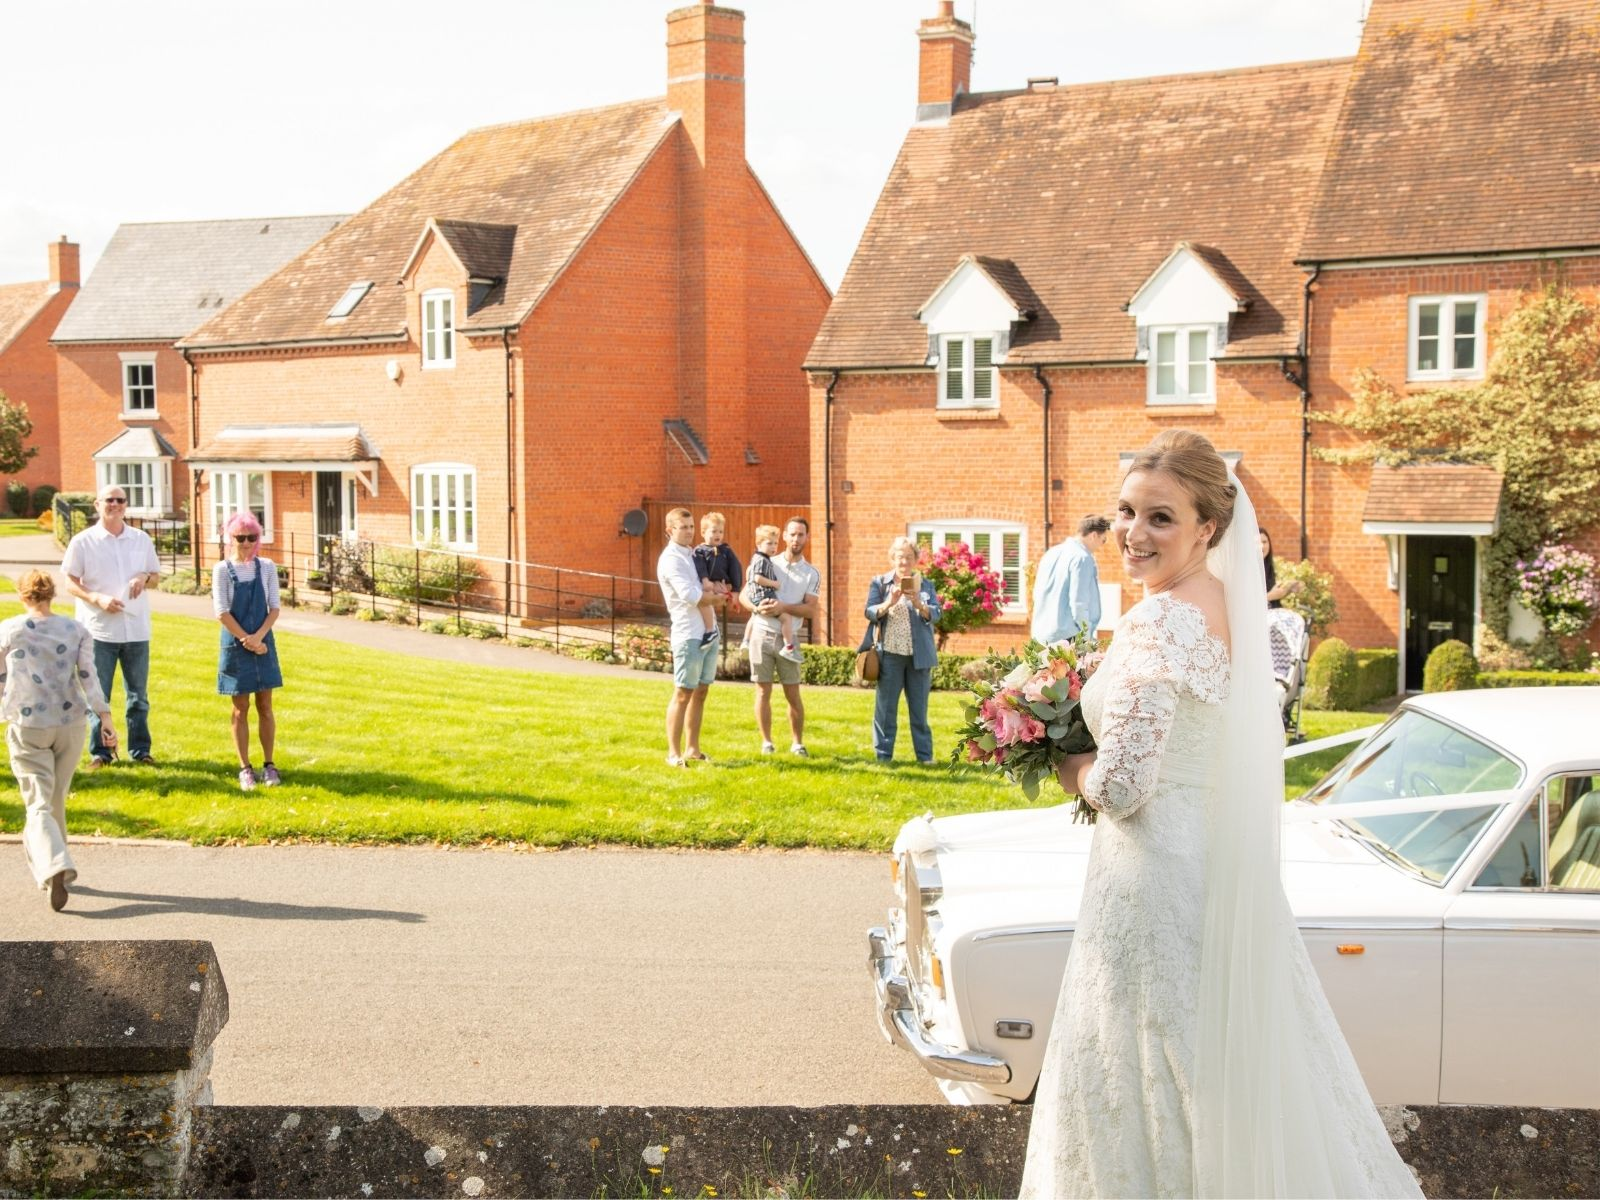 Boho Bride Rachel outside her church, socially distancing from guests on the green opposite